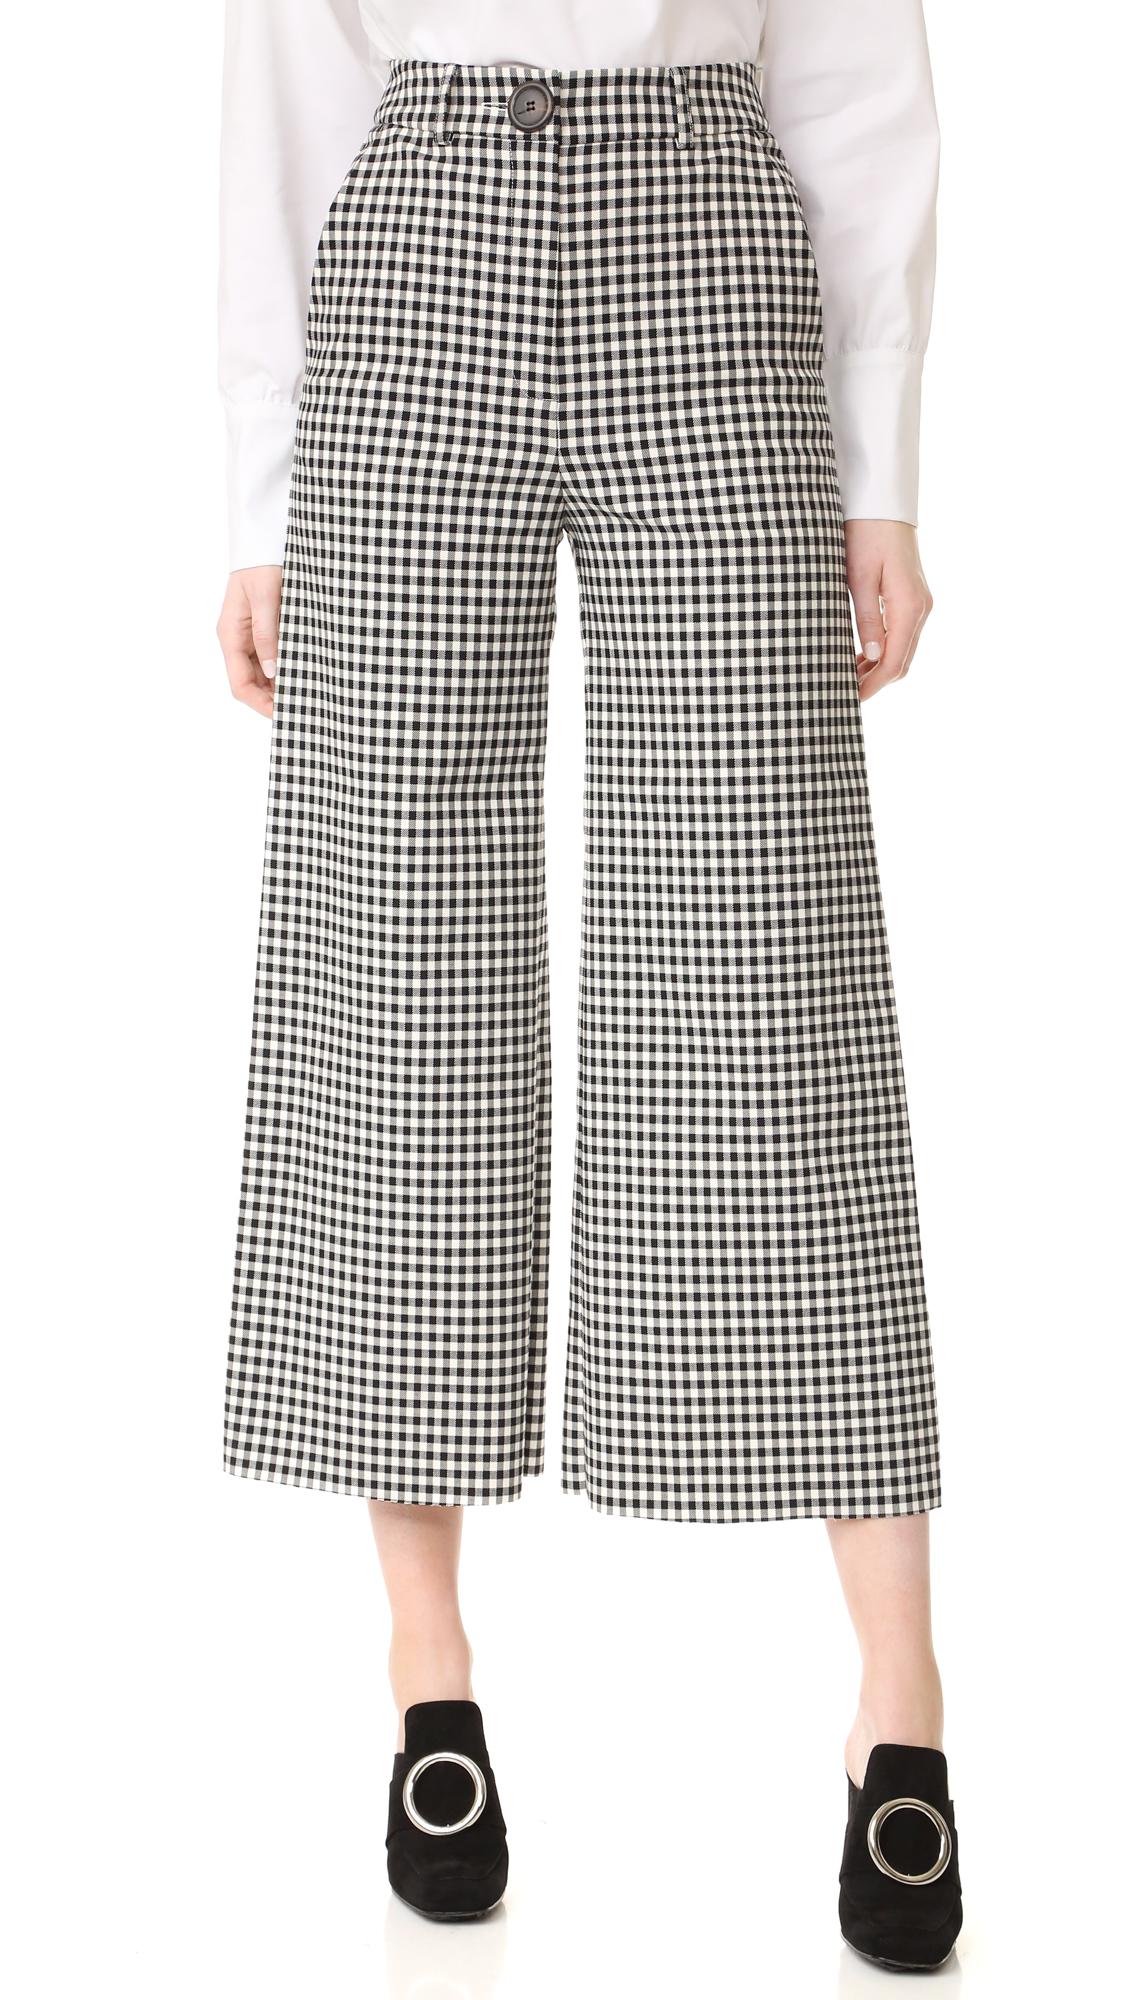 Bold gingham checks accent these high waisted A.W.A.K.E. culottes. Slant front pockets. Natural horn button closure and zip fly. Fabric: Fused suiting. 32% cotton/31% polyester/16% viscose/12% wool/6% polyurethane. Dry clean. Made in United